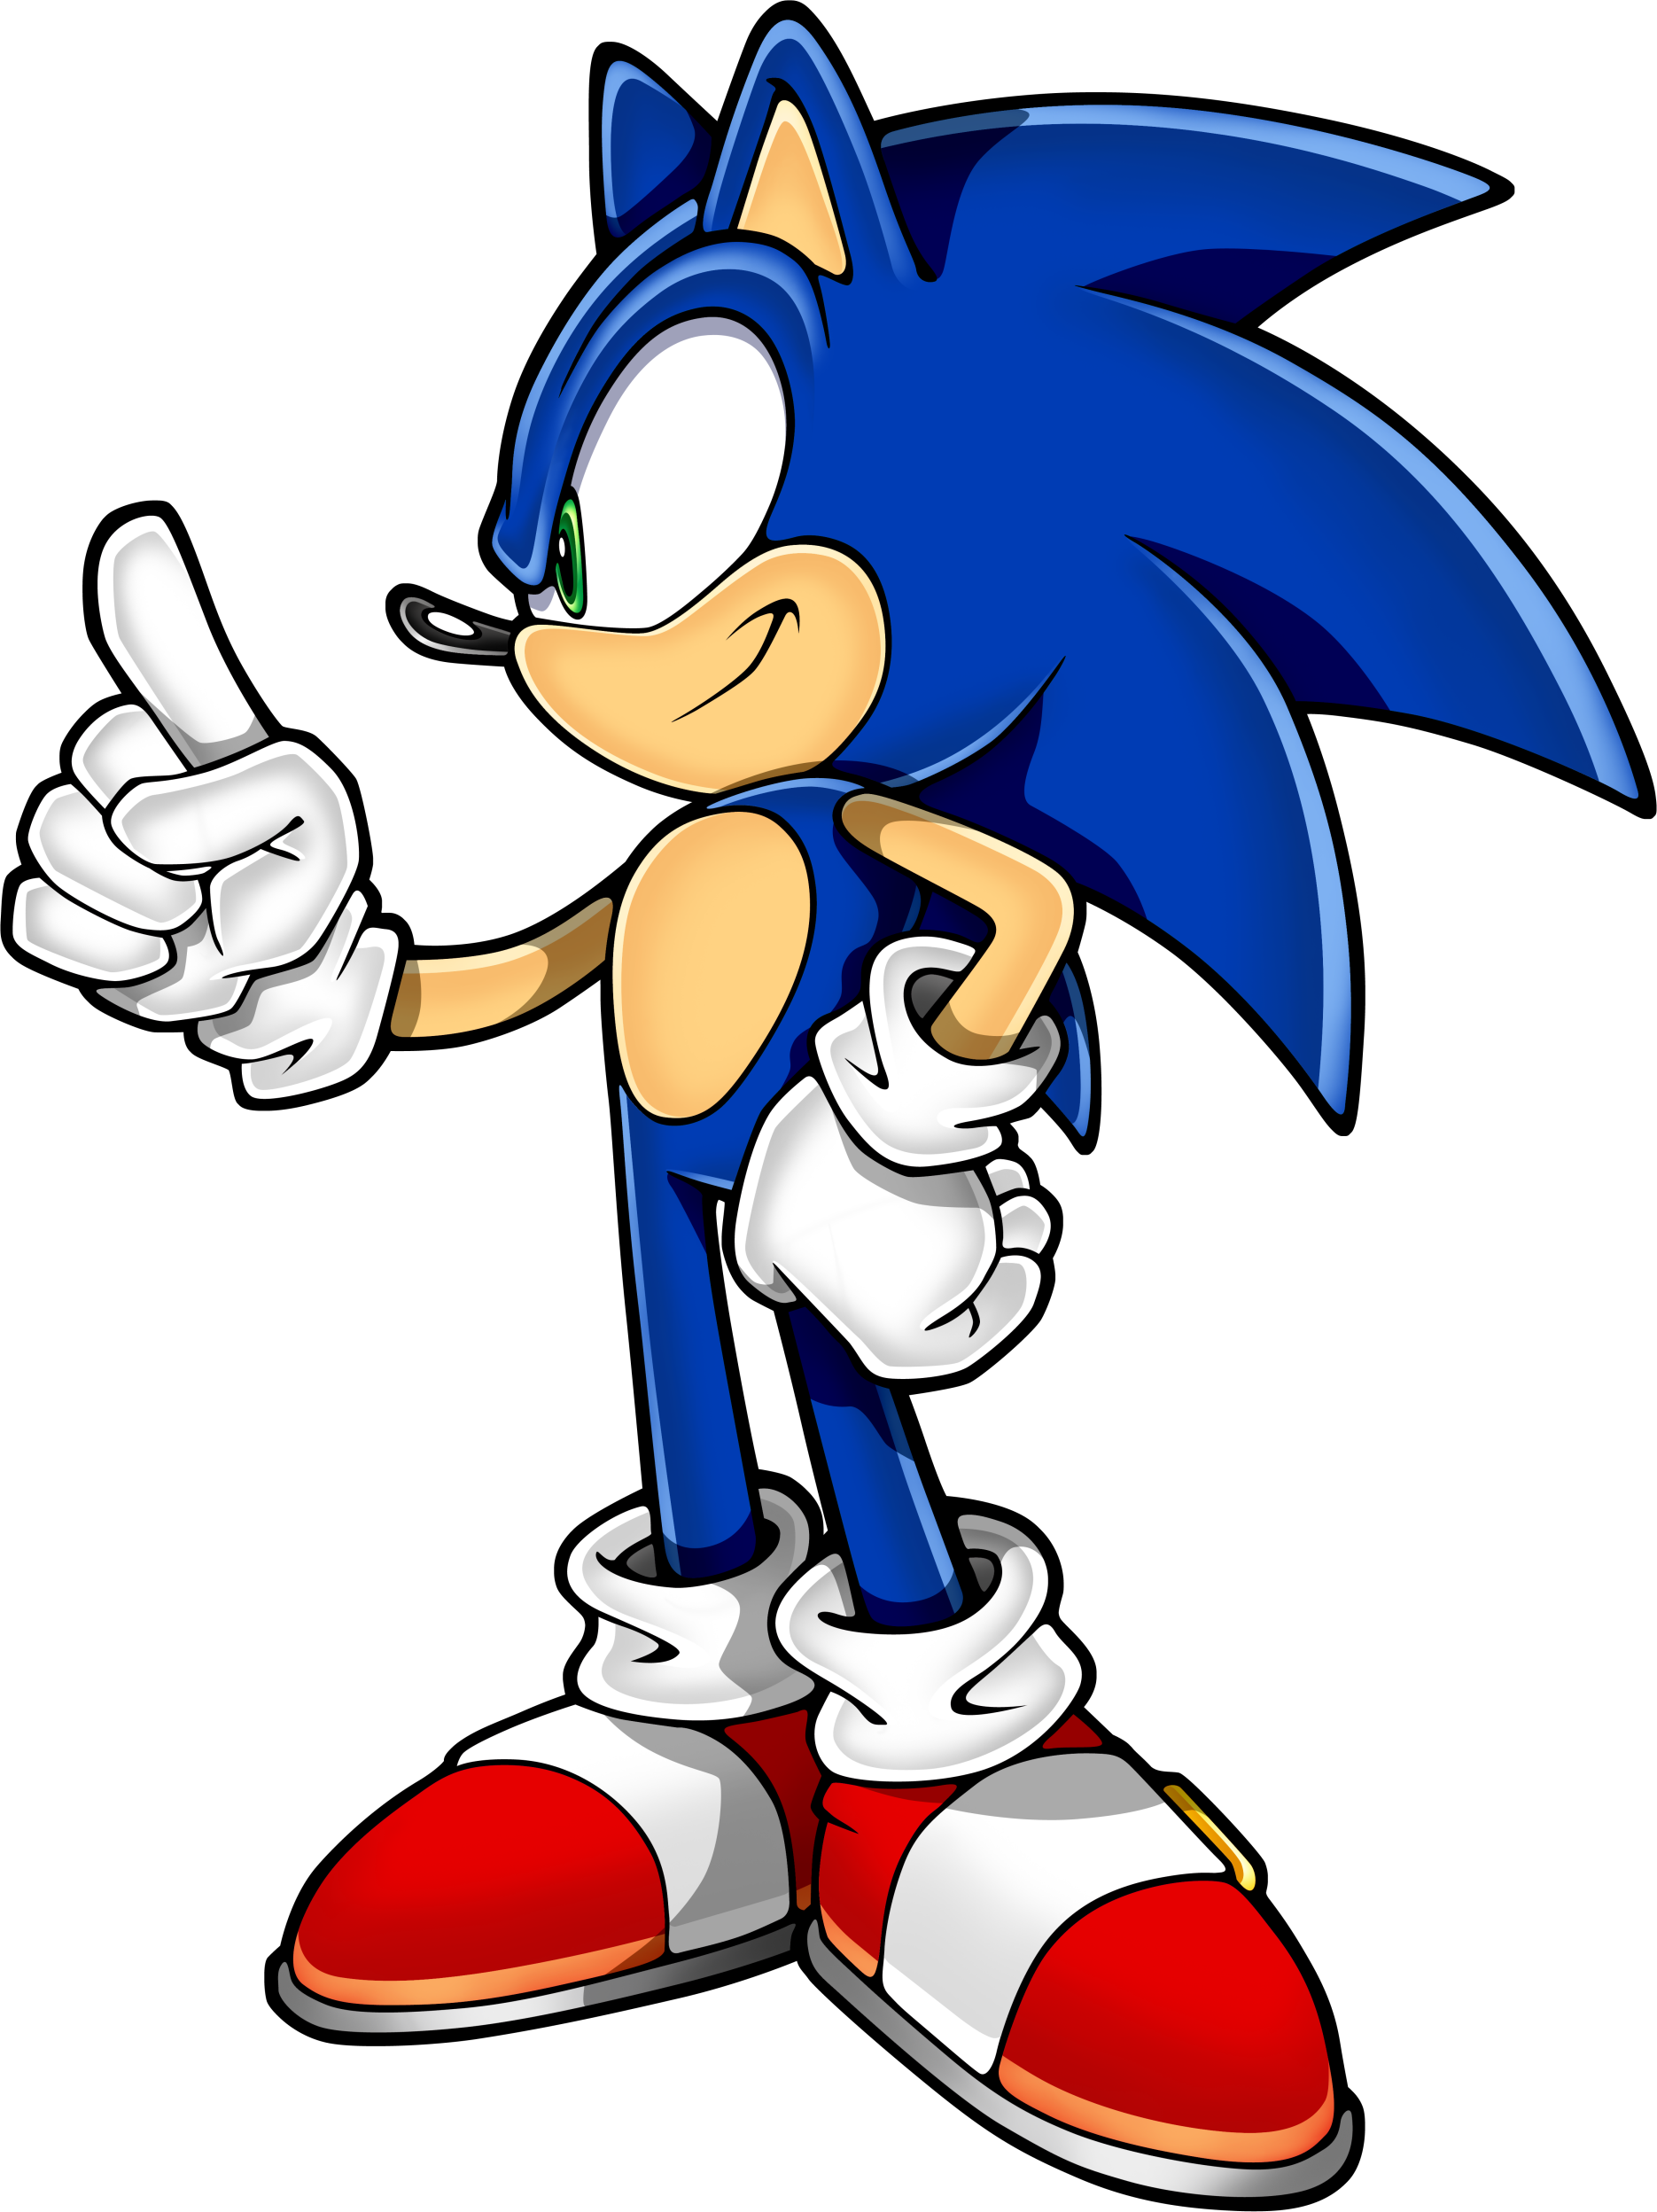 Sonic The Hedgehog PNG - 13013